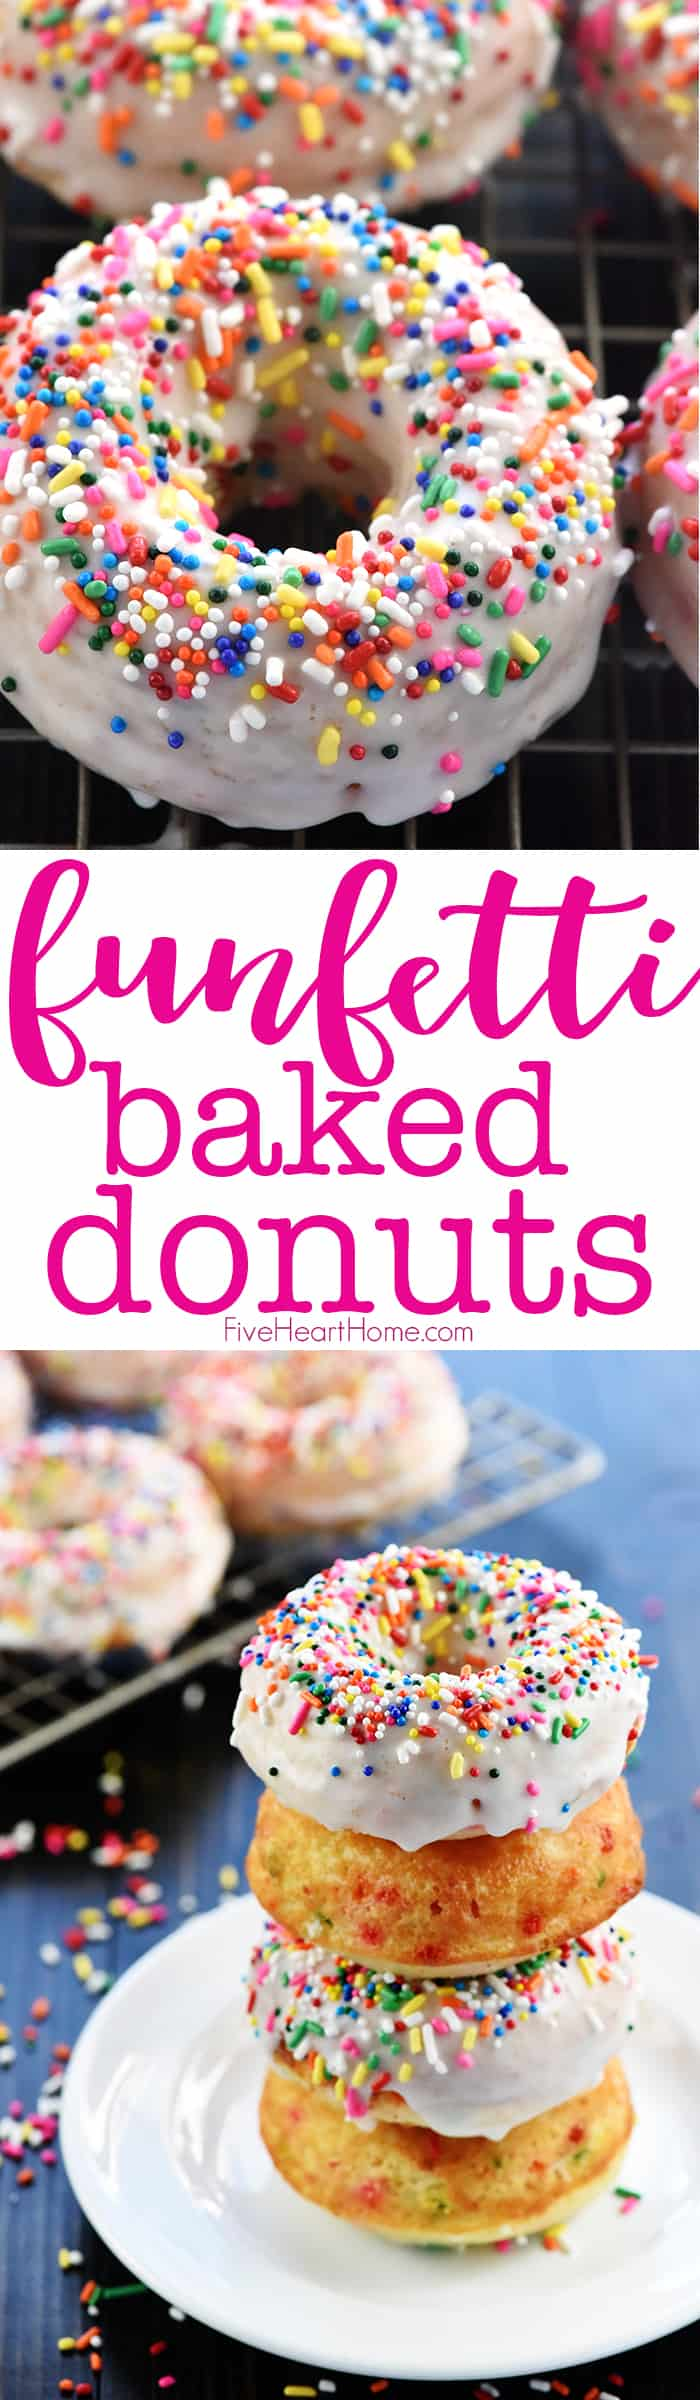 Funfetti Baked Donuts ~ coated with a simple vanilla glaze and loaded with colorful sprinkles, these baked doughnuts are perfect as a birthday treat or for any celebration! | FiveHeartHome.com via @fivehearthome